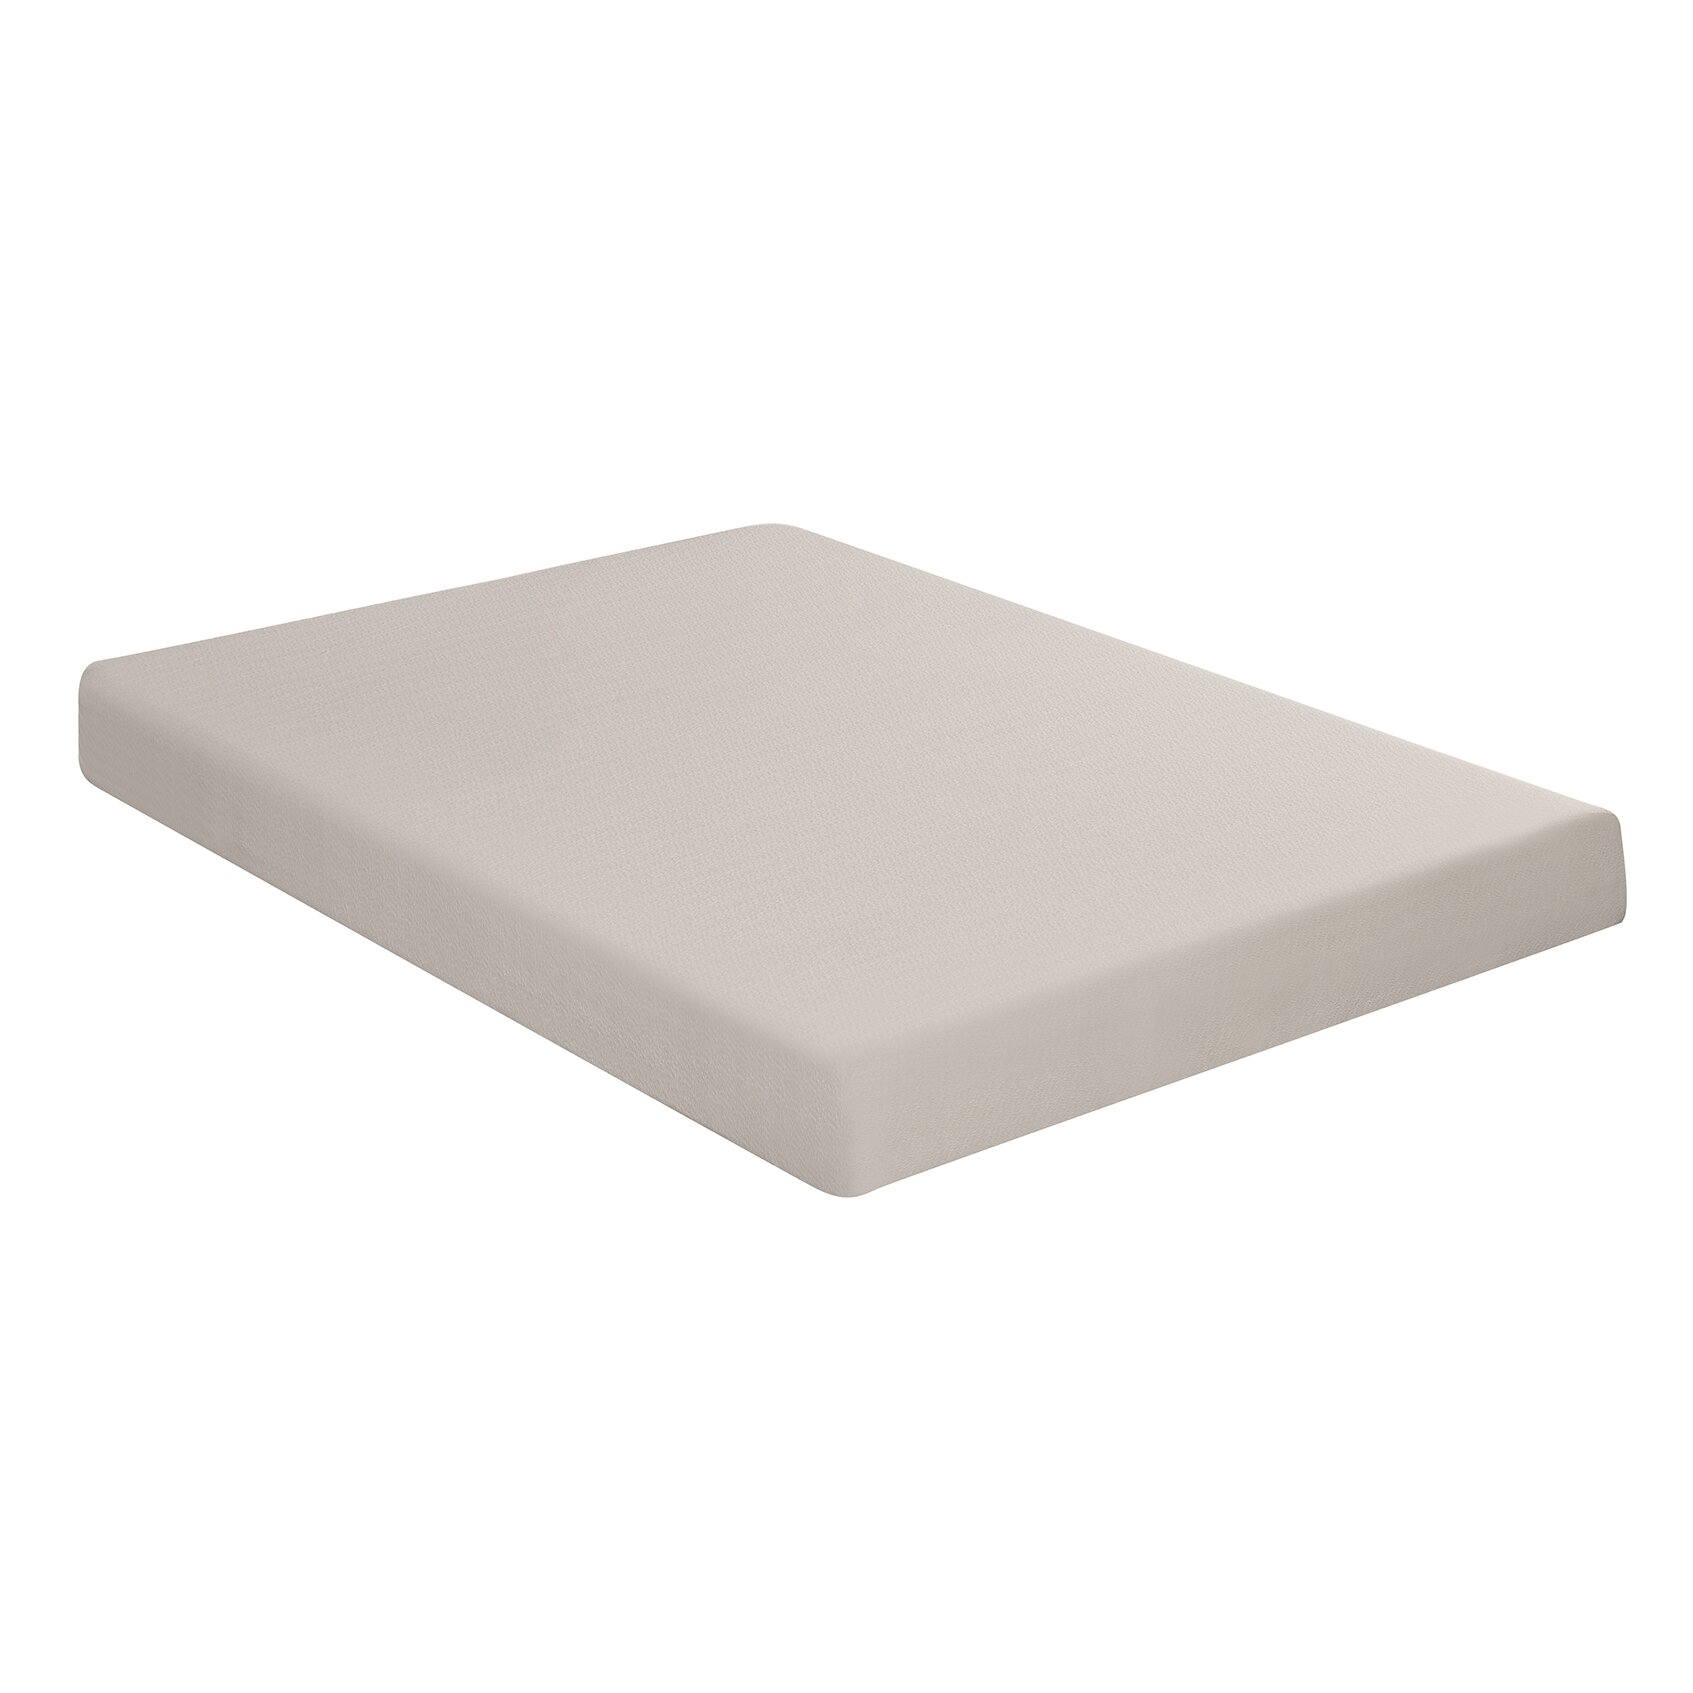 Signature sleep memoir 8 full size memory foam mattress reviews Full size foam mattress